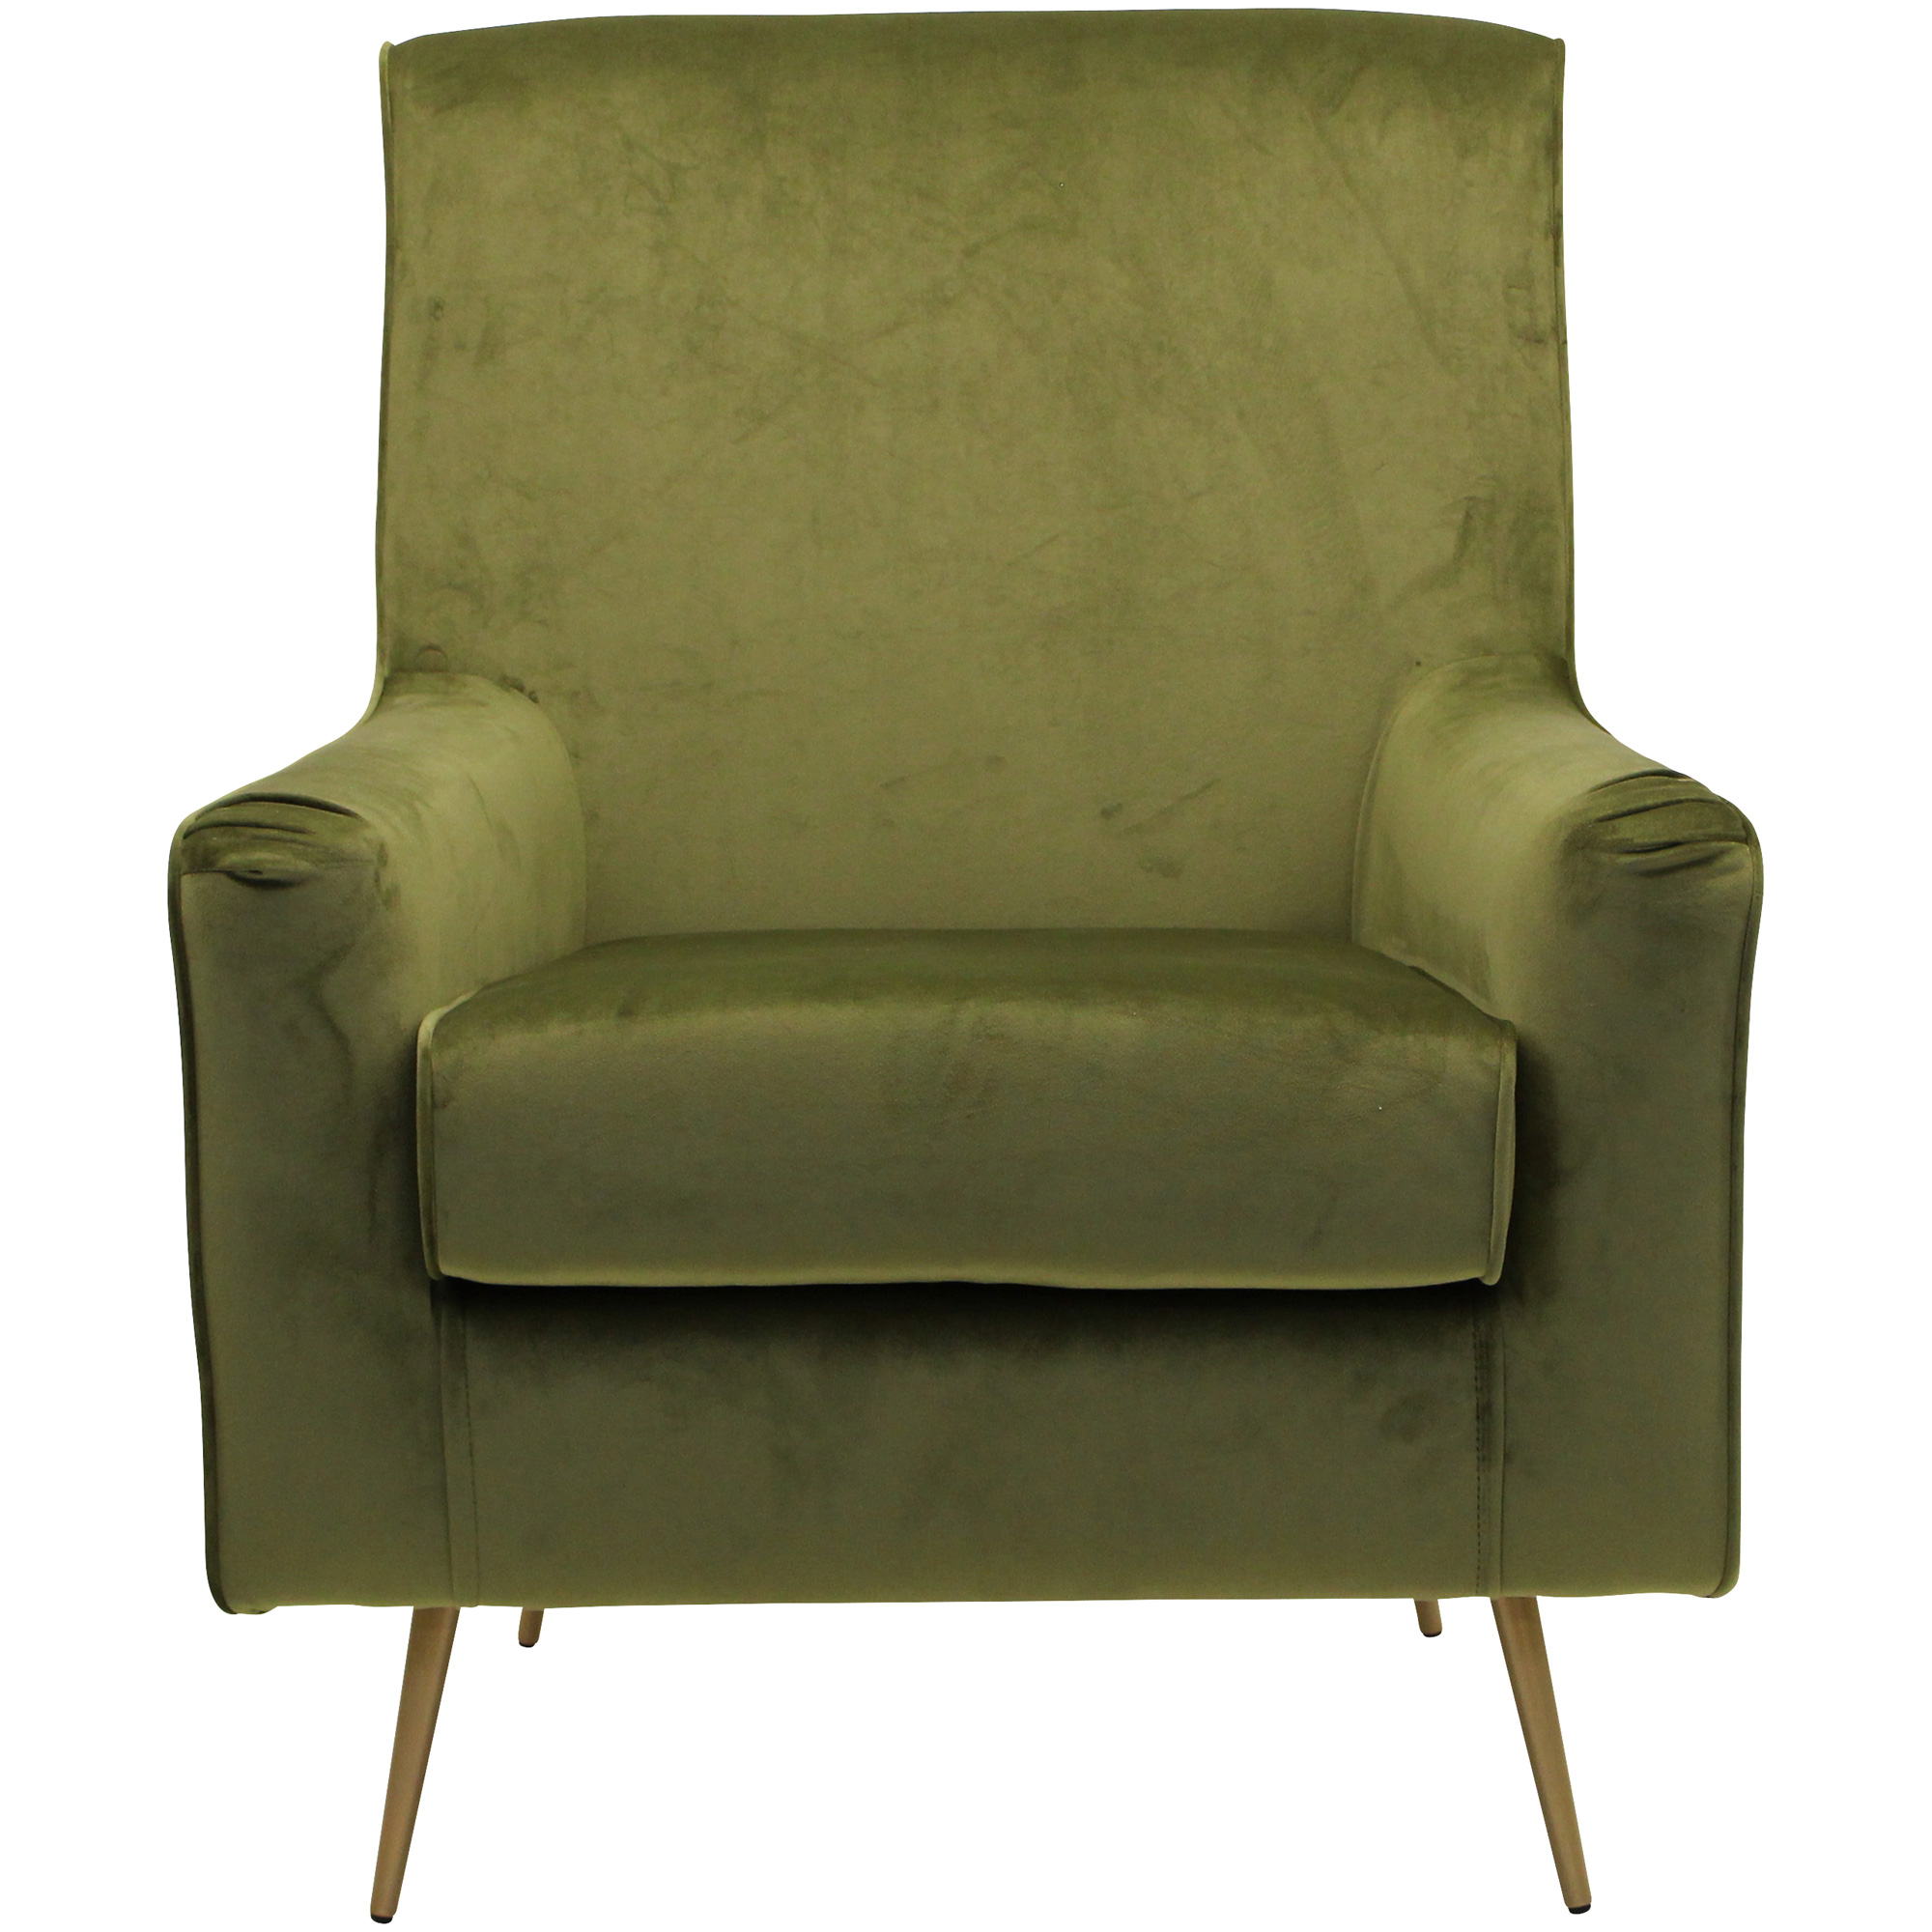 Overman | Lana Avocado Accent Chair